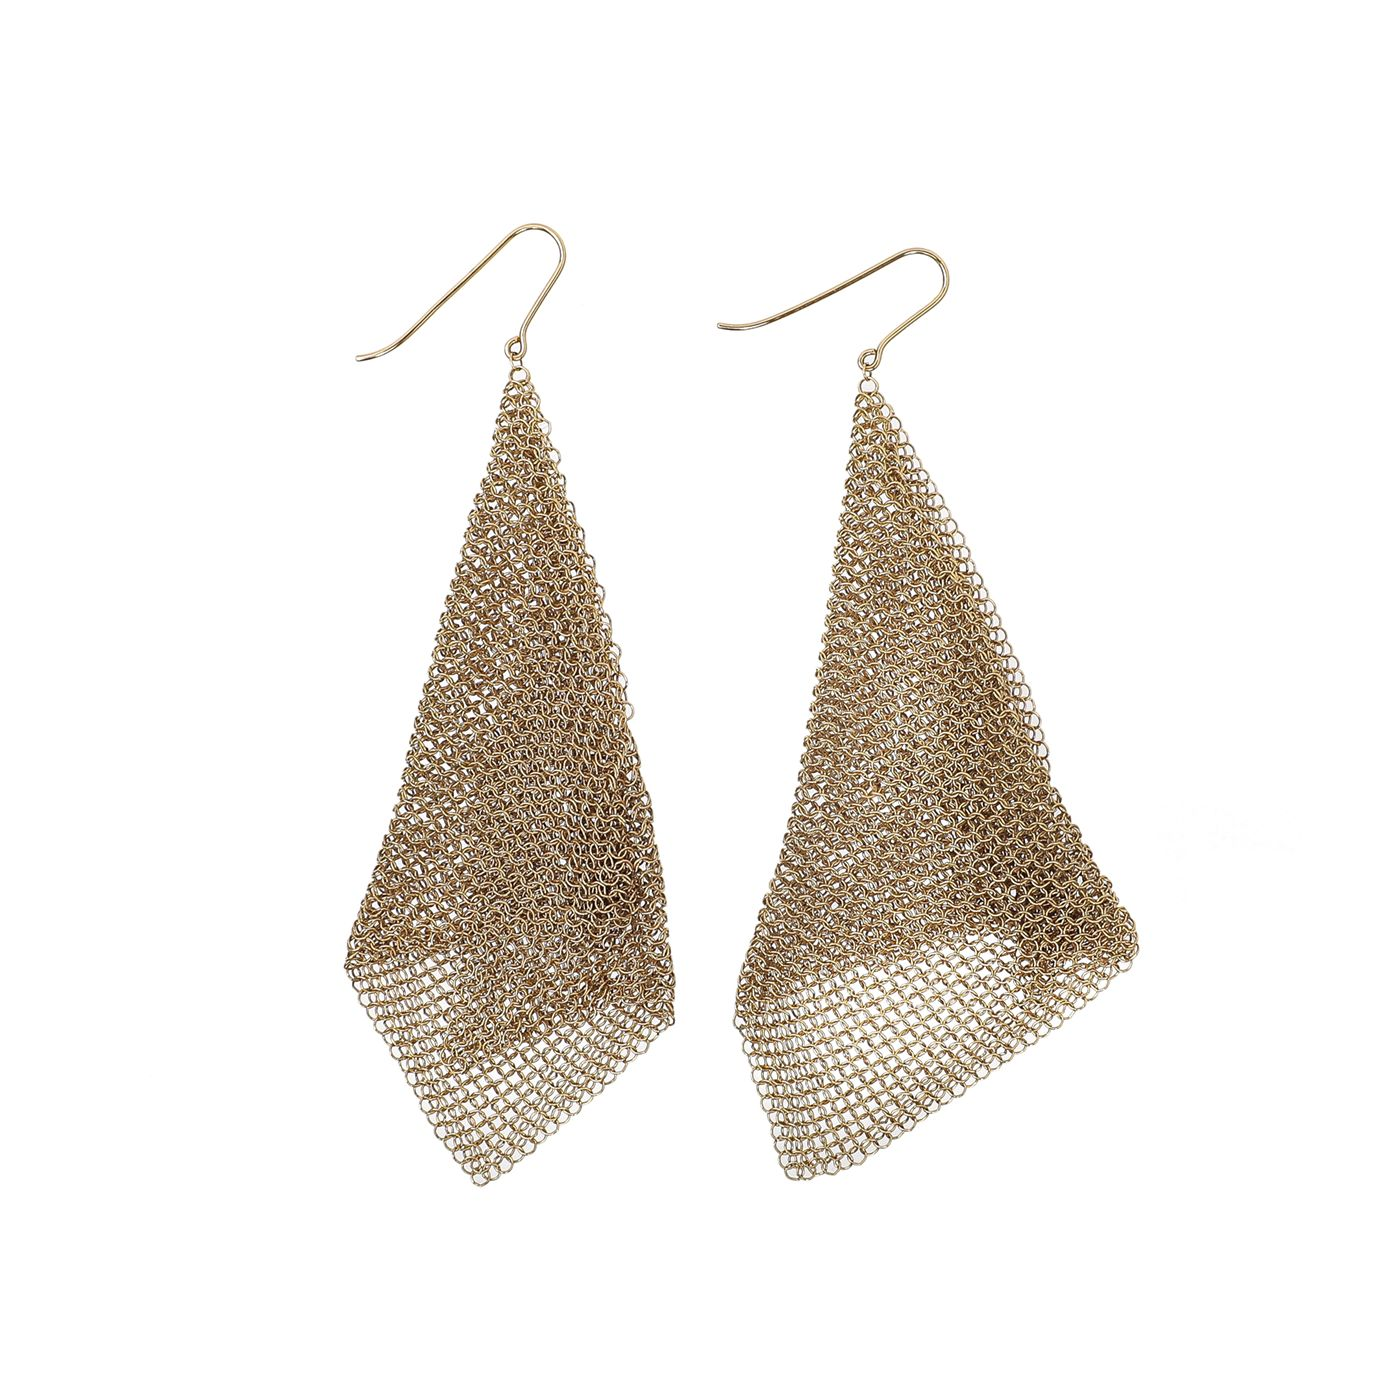 Tiffany & Co 18K Yellow Gold Elsa Peretti Mesh Dangling Earring